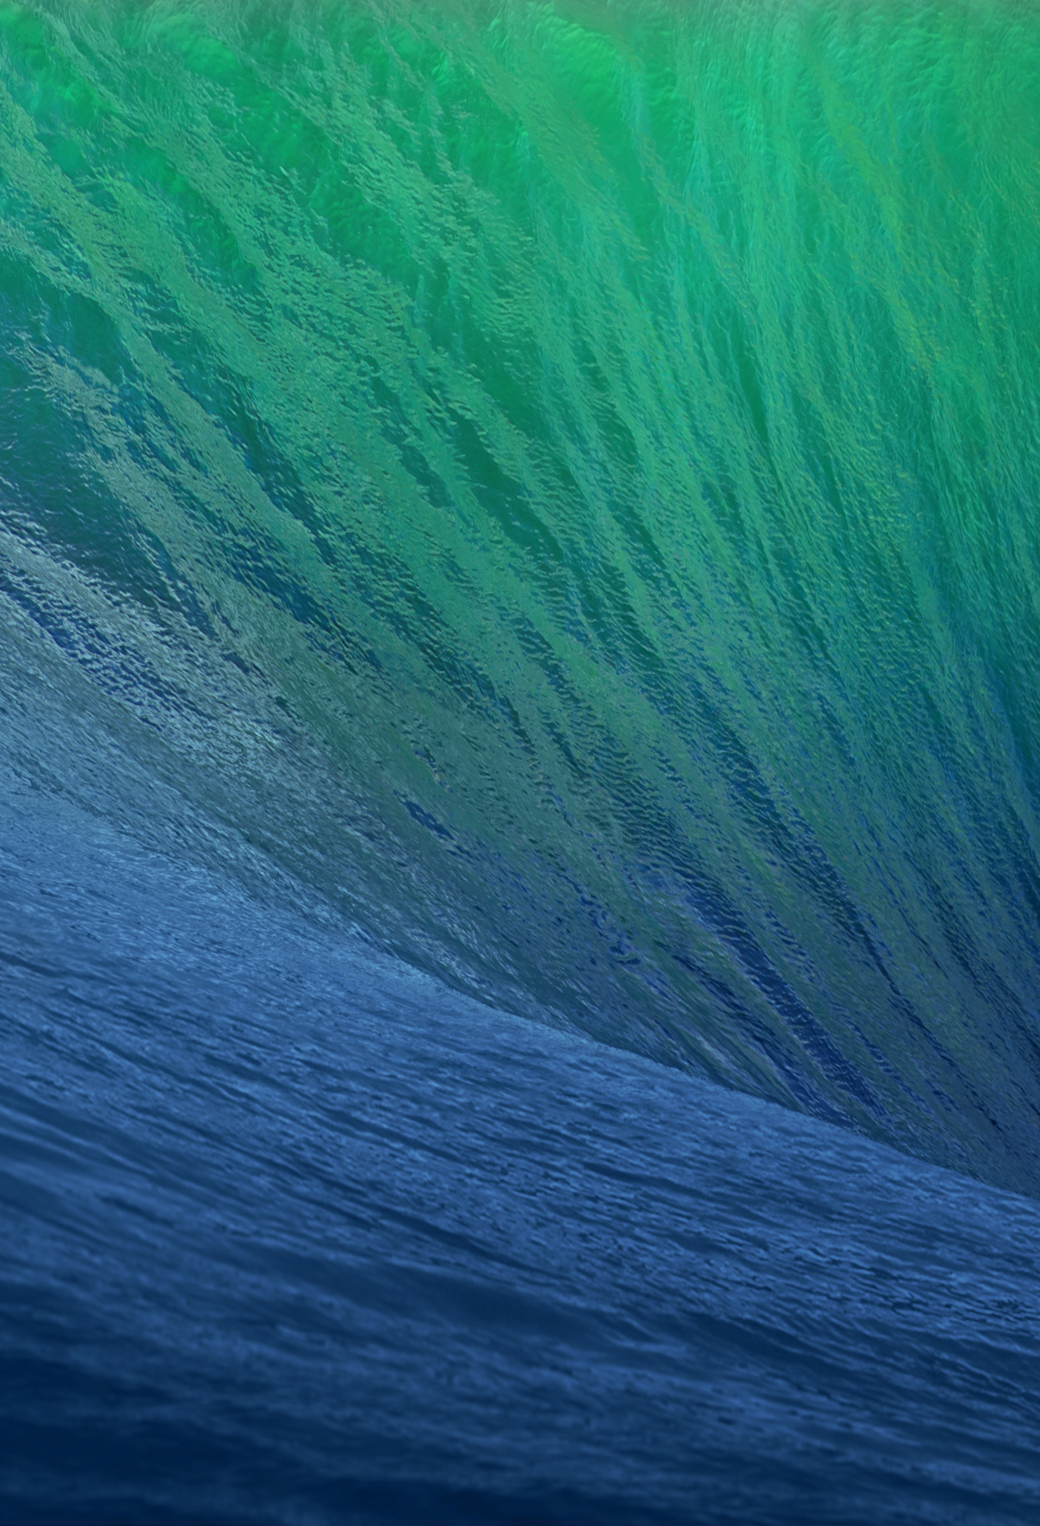 Best Dynamic Retina Space Wallpapers For iPhone 5s   mobilecrazies 1040x1526